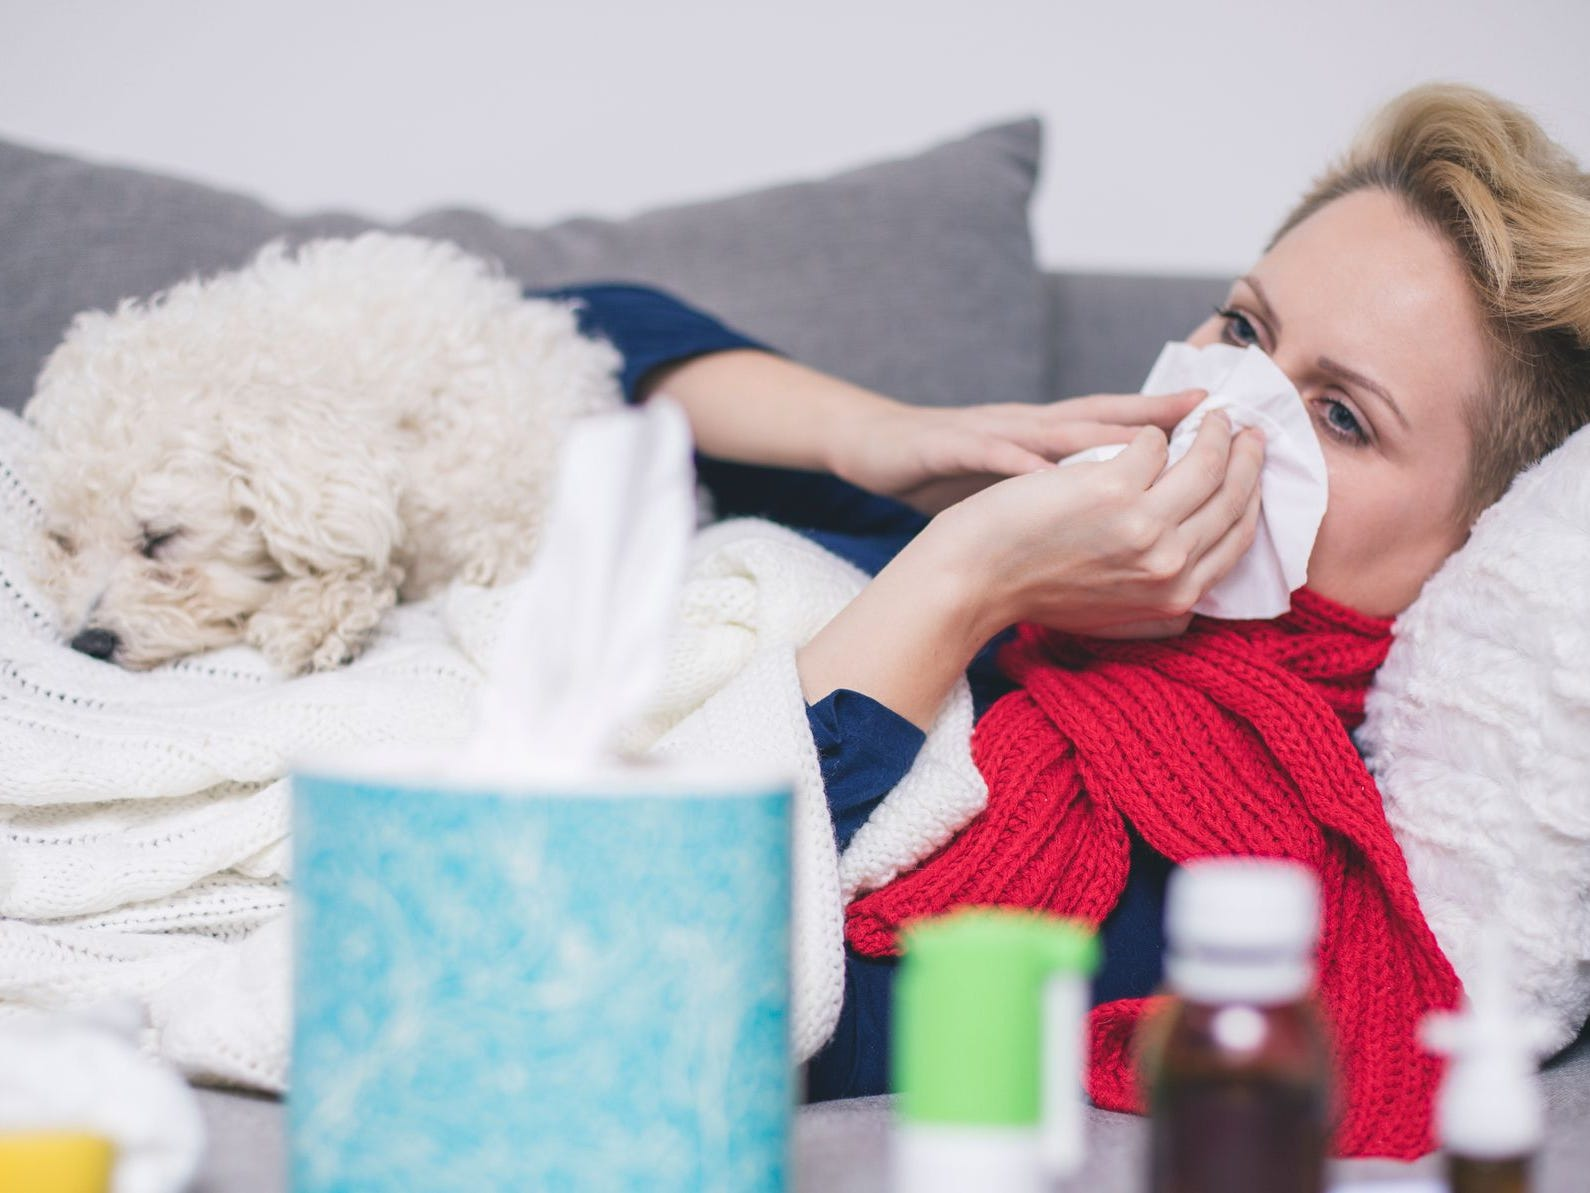 Do you know how long flu viruses can survive on hard surfaces? Test your flu IQ to arm yourself with knowledge.